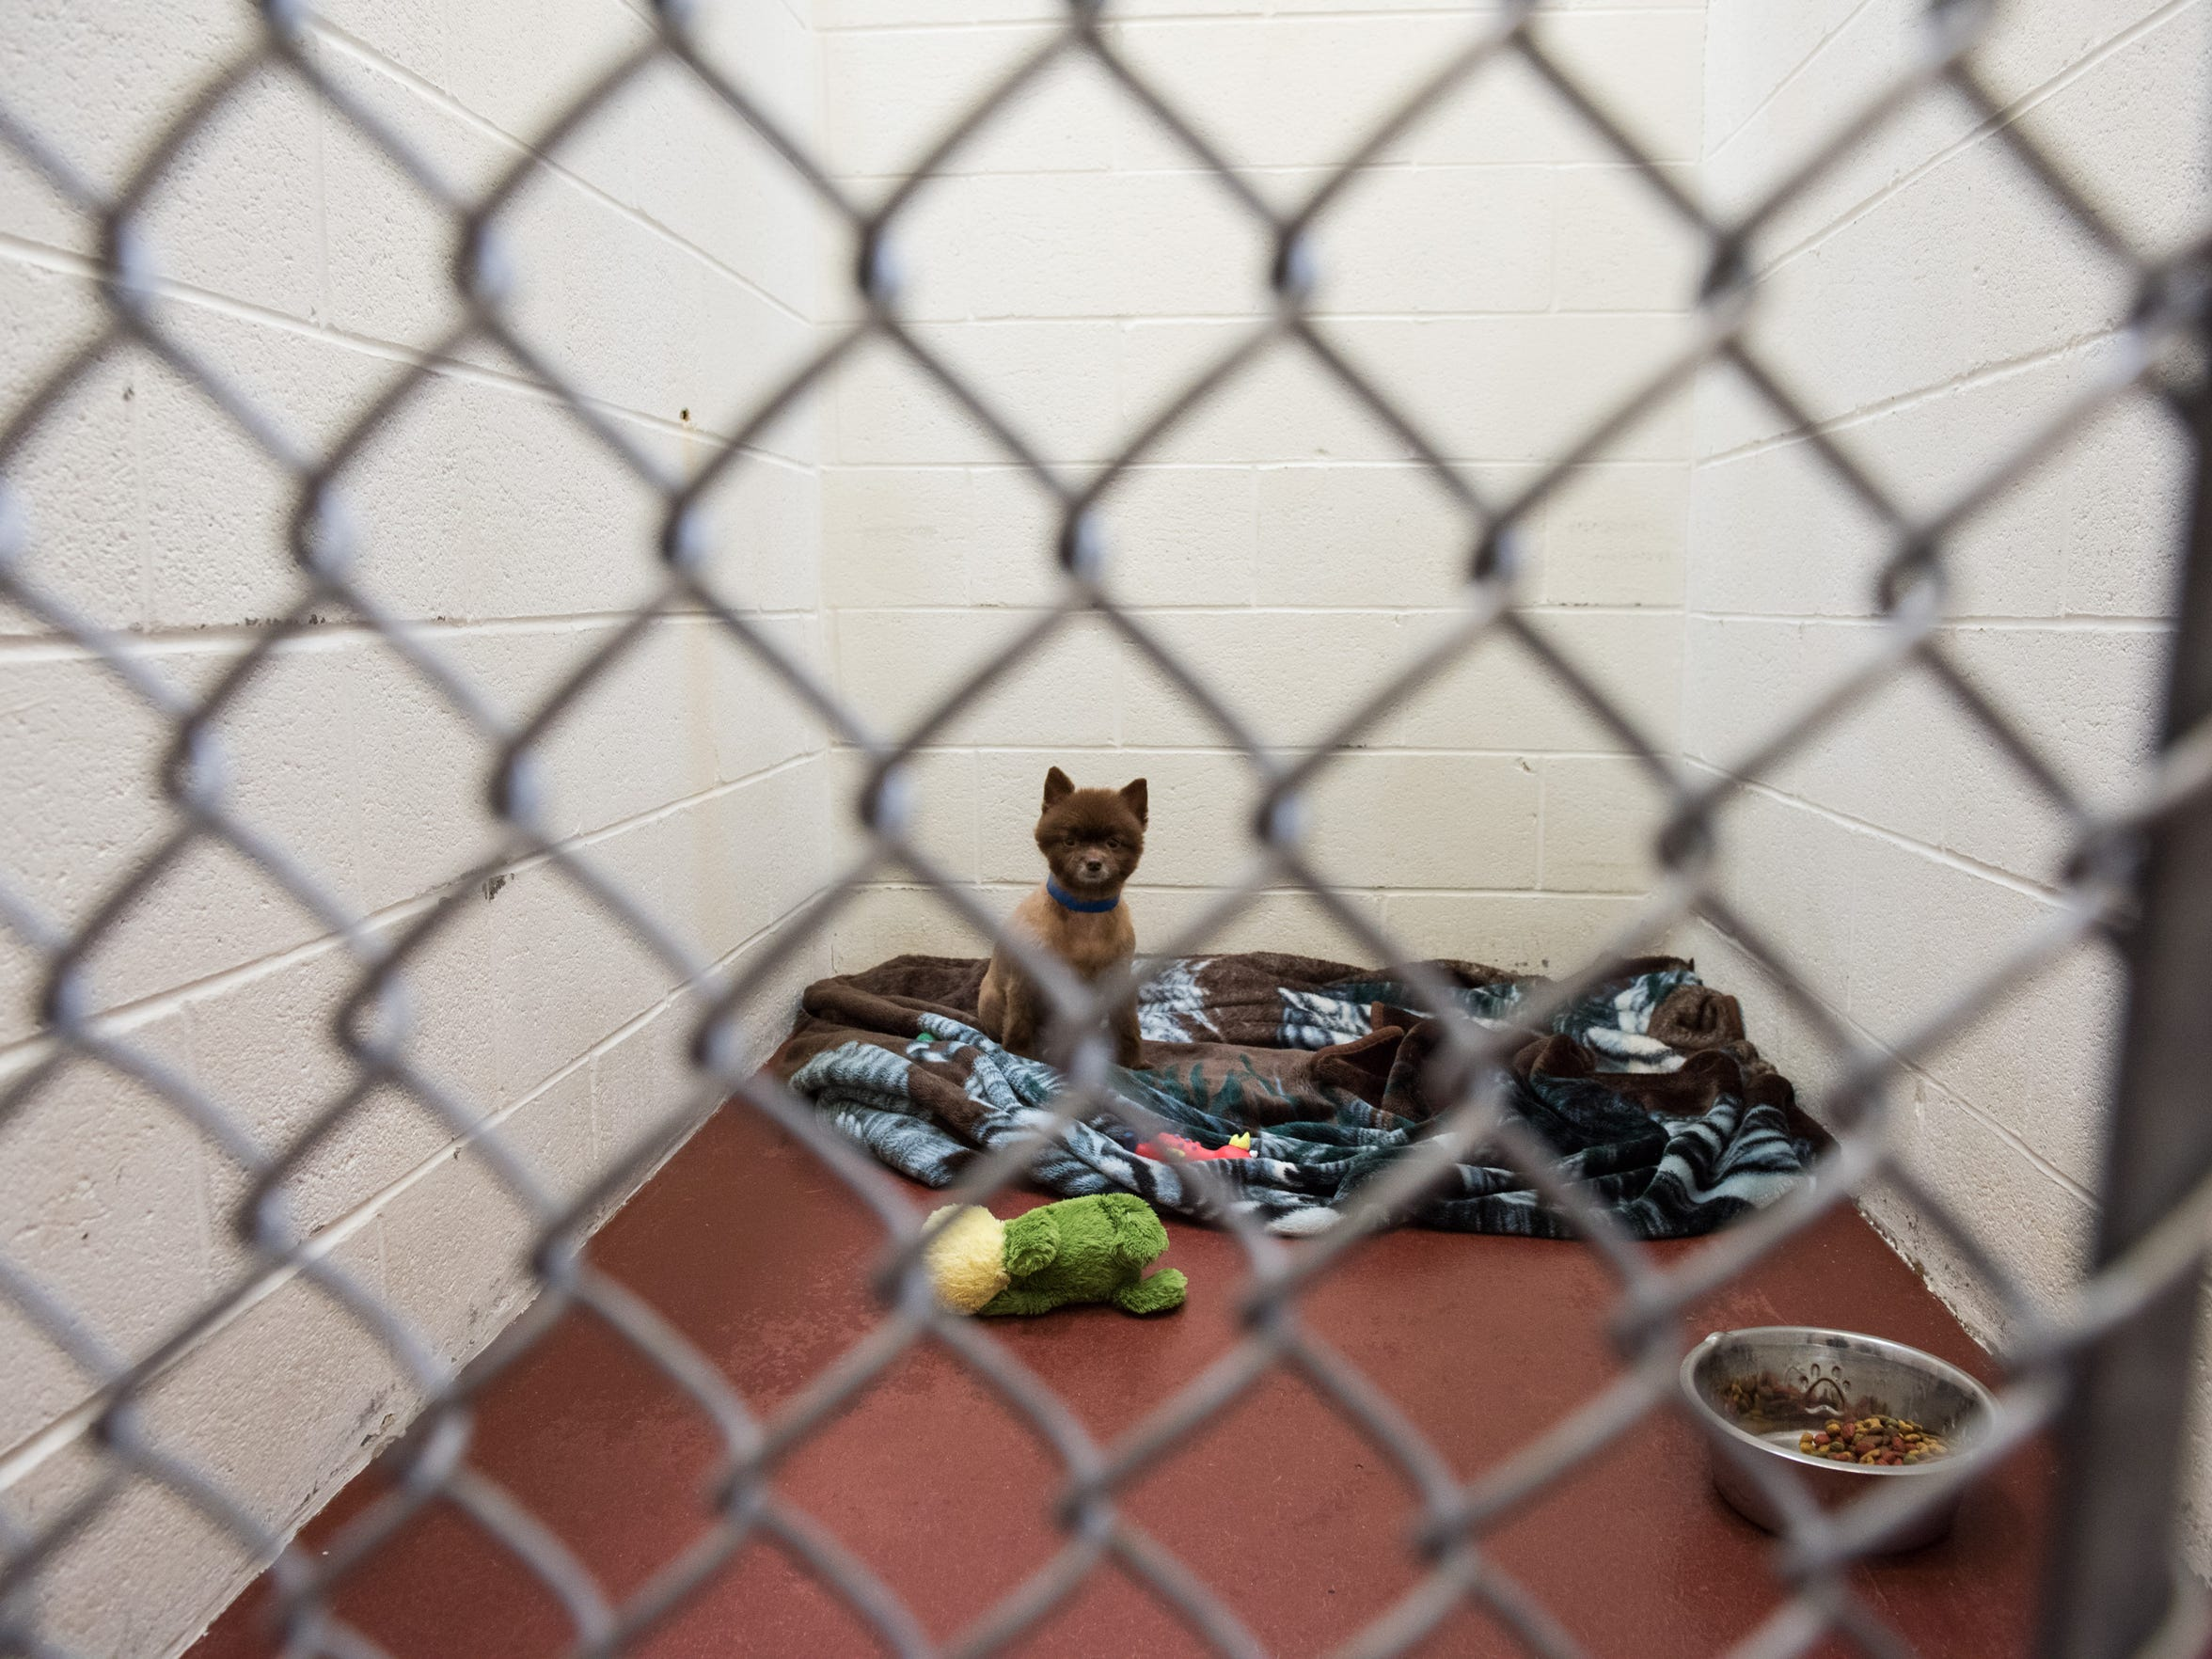 A dog seized in Eden sits alone in its kennel at the Humane Society of Wicomico County on Wednesday, April 27, 2016.